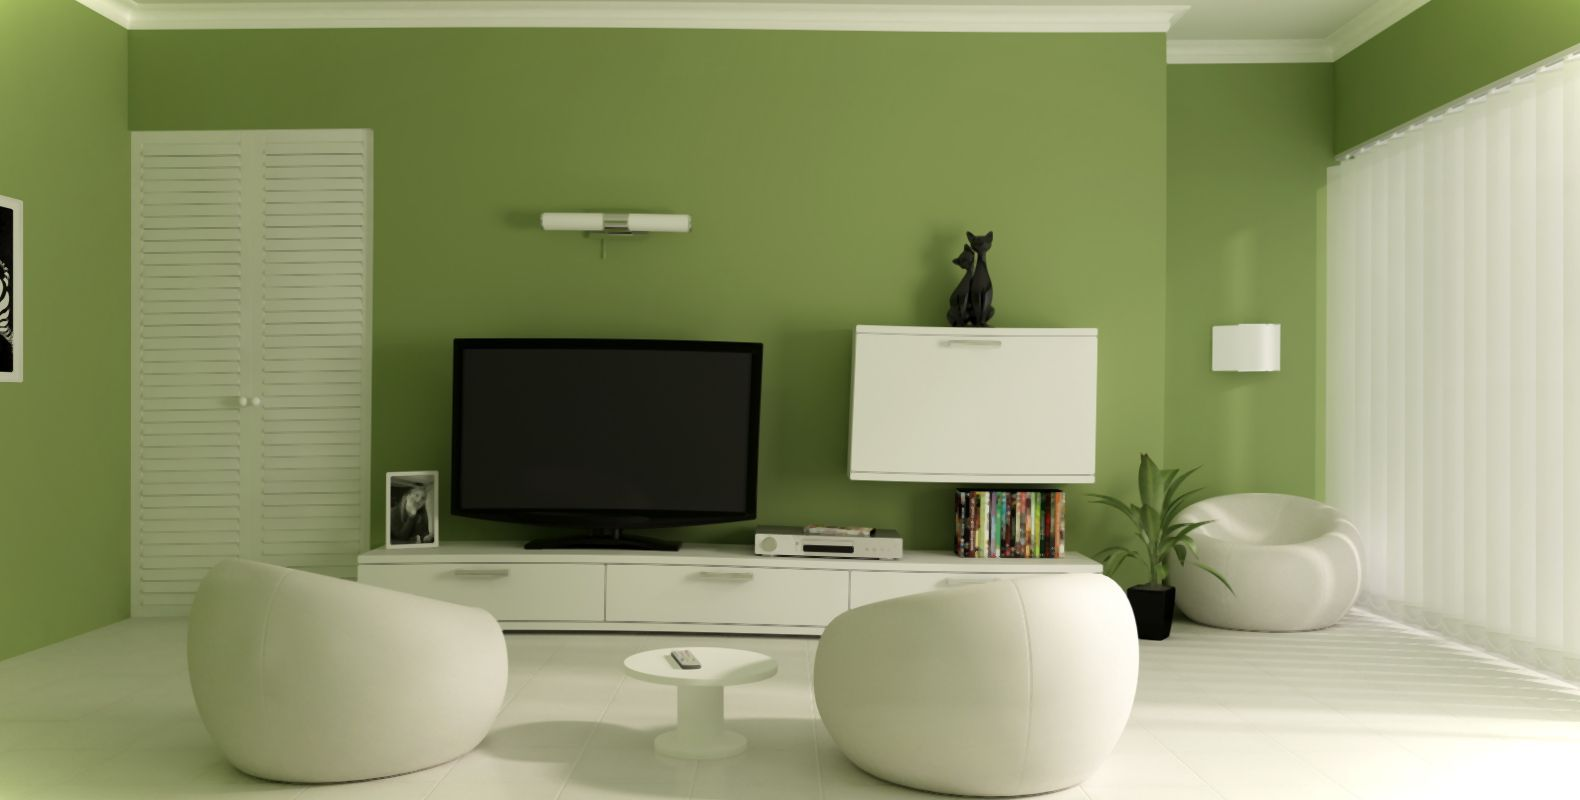 Living Room Green Paint beautiful small living room design with green wall paint color and